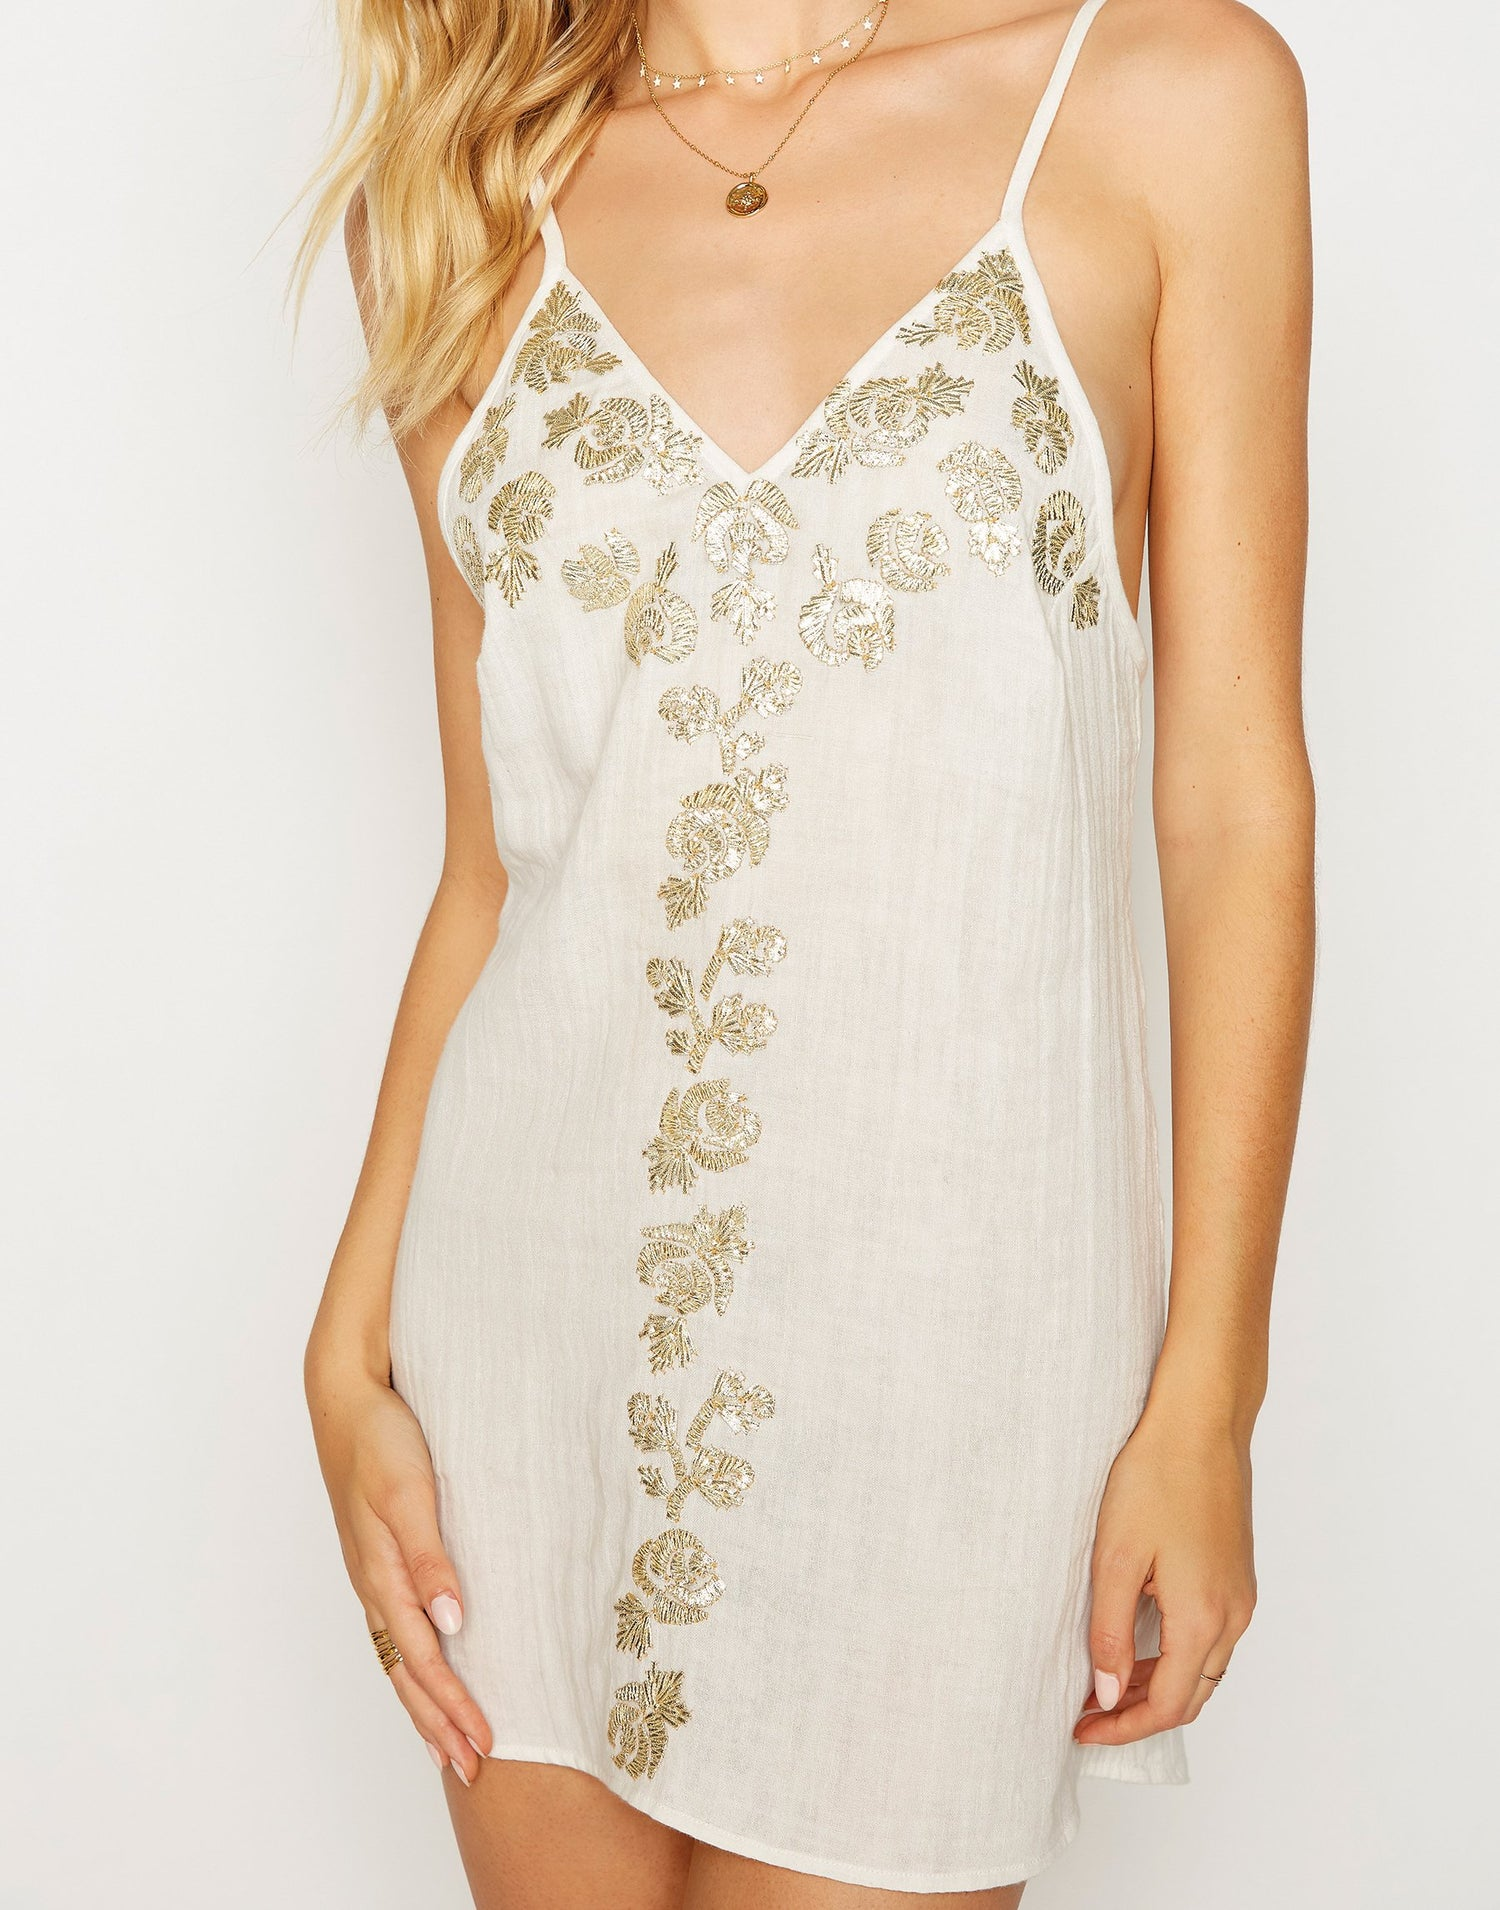 Anaya Mini Dress in Ivory with Hand Sewn Detail - detail view